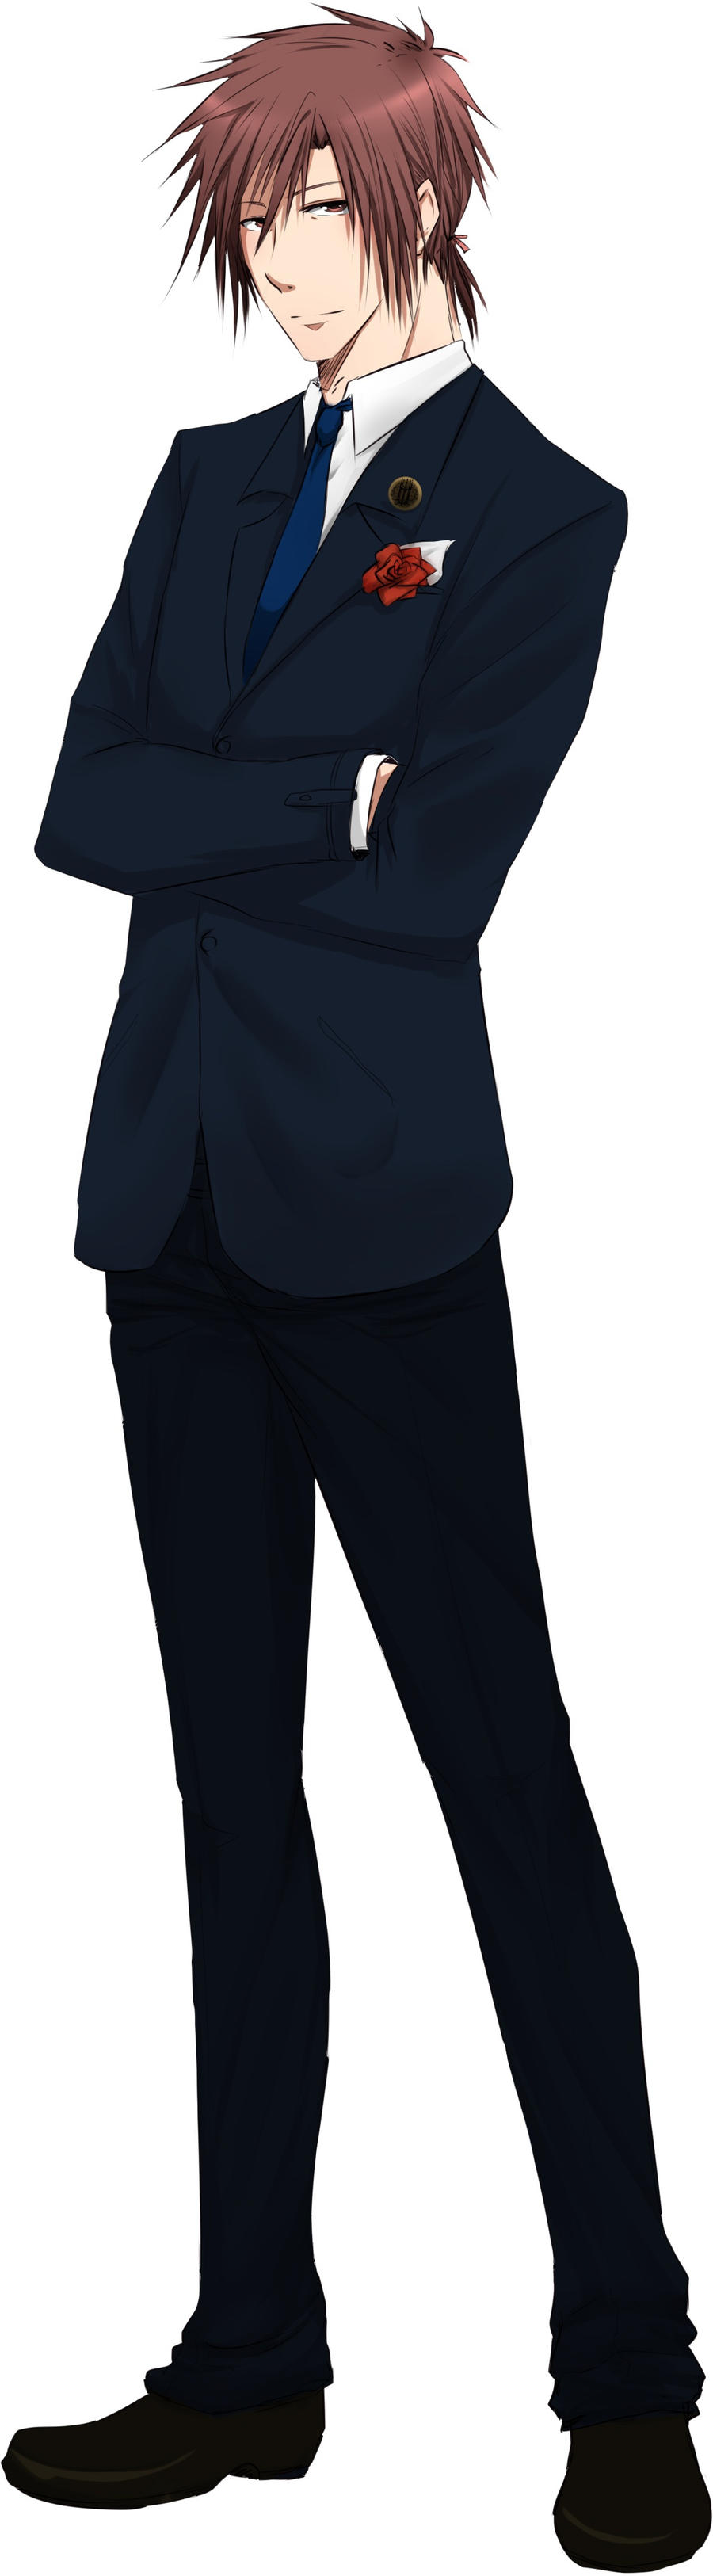 Anime boy in suit